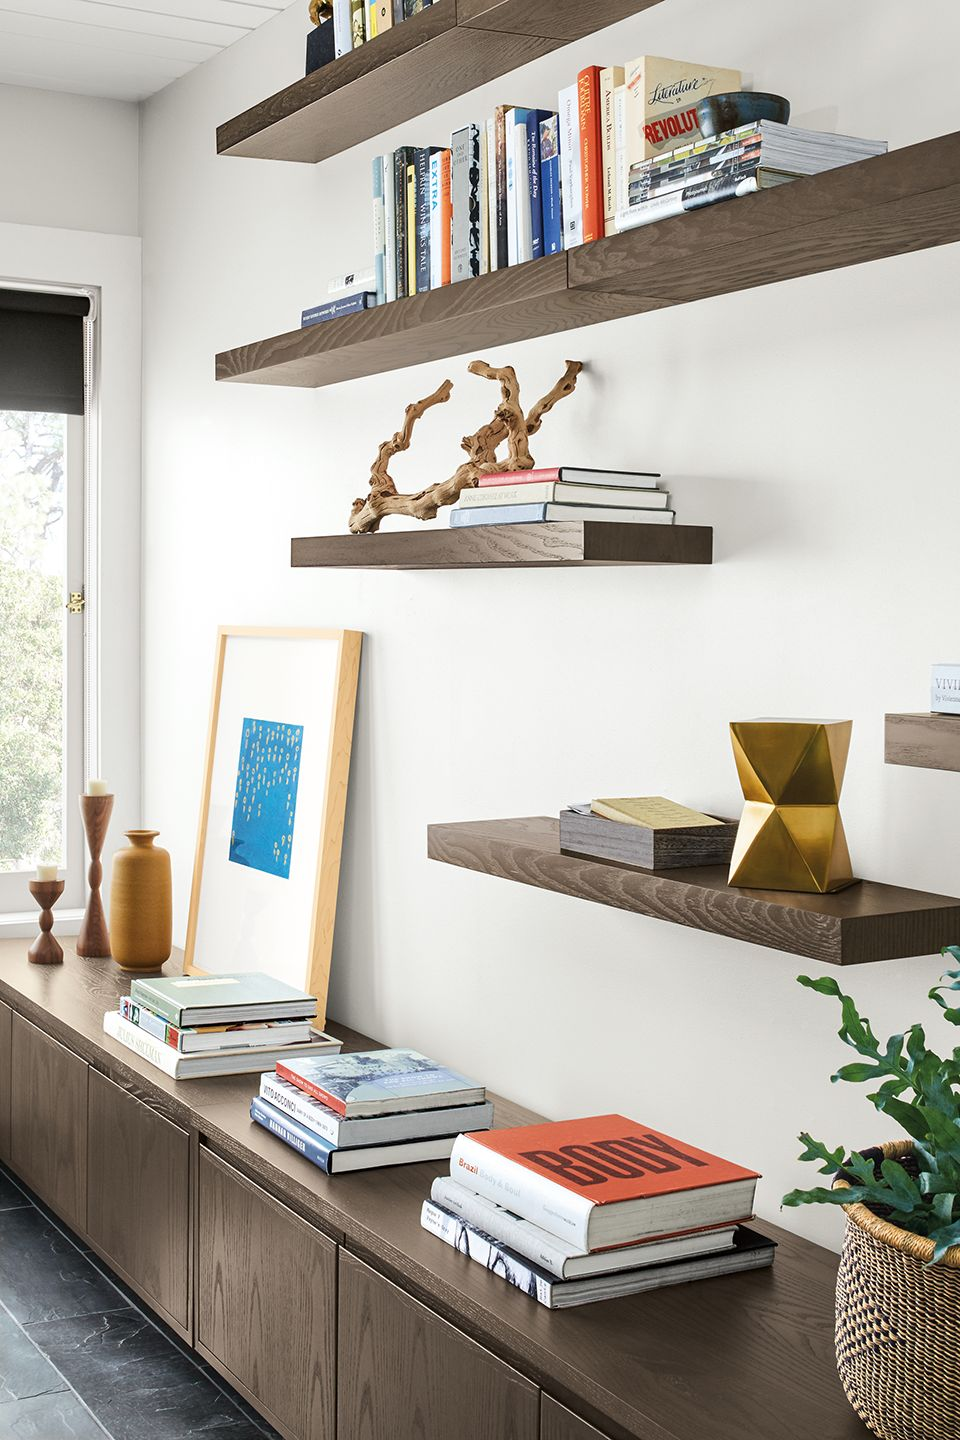 Side detail of eight Float wall shelves